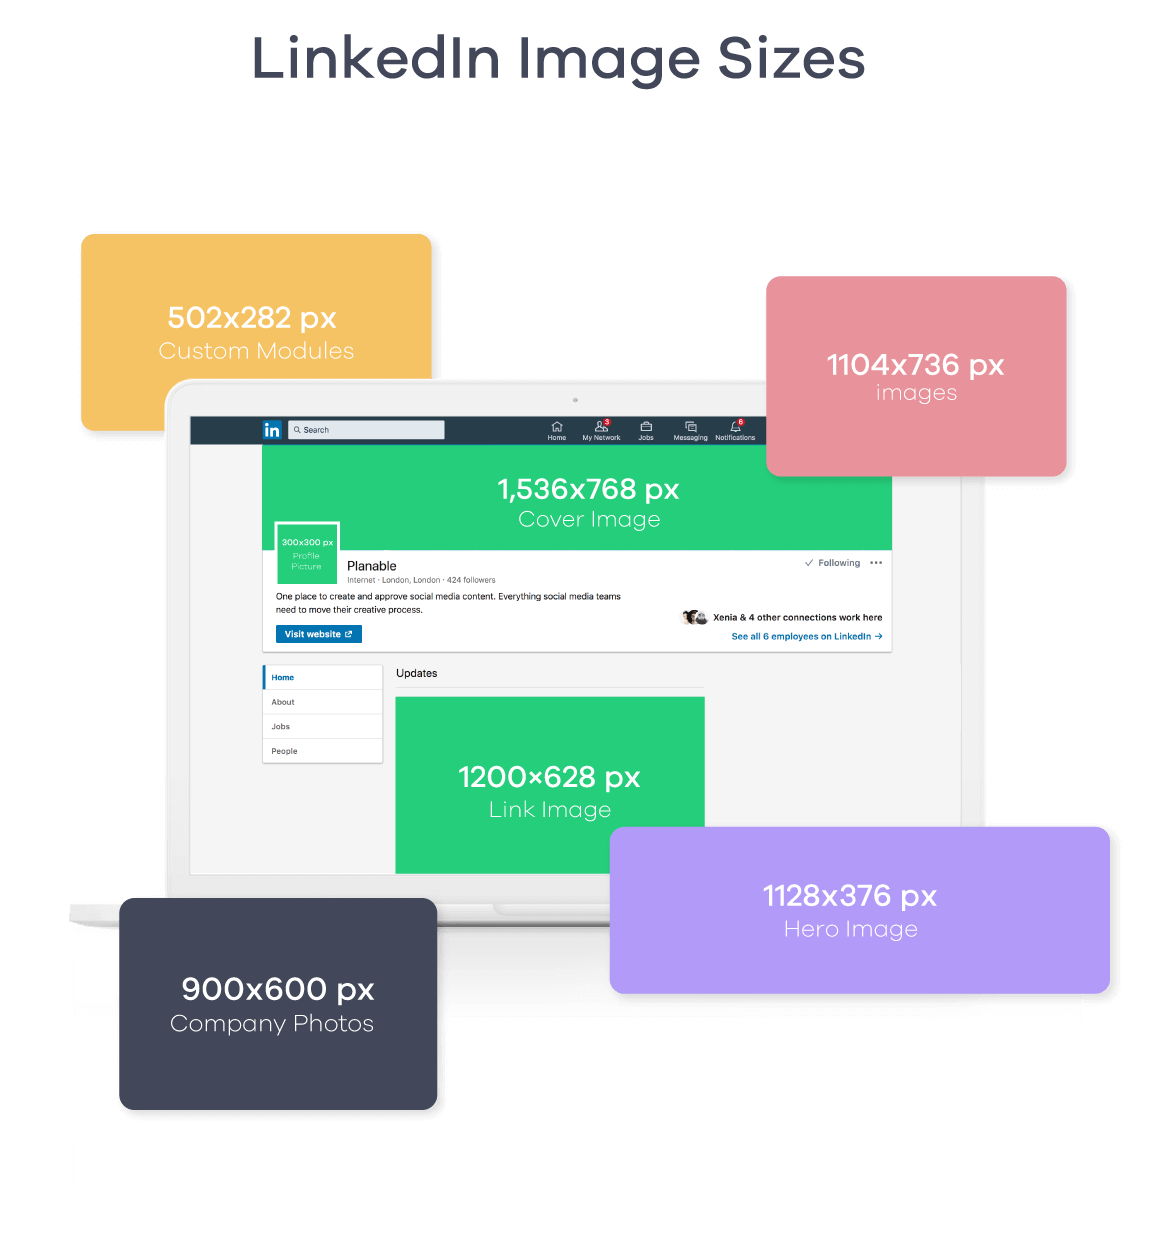 linkedin image sizes 2019